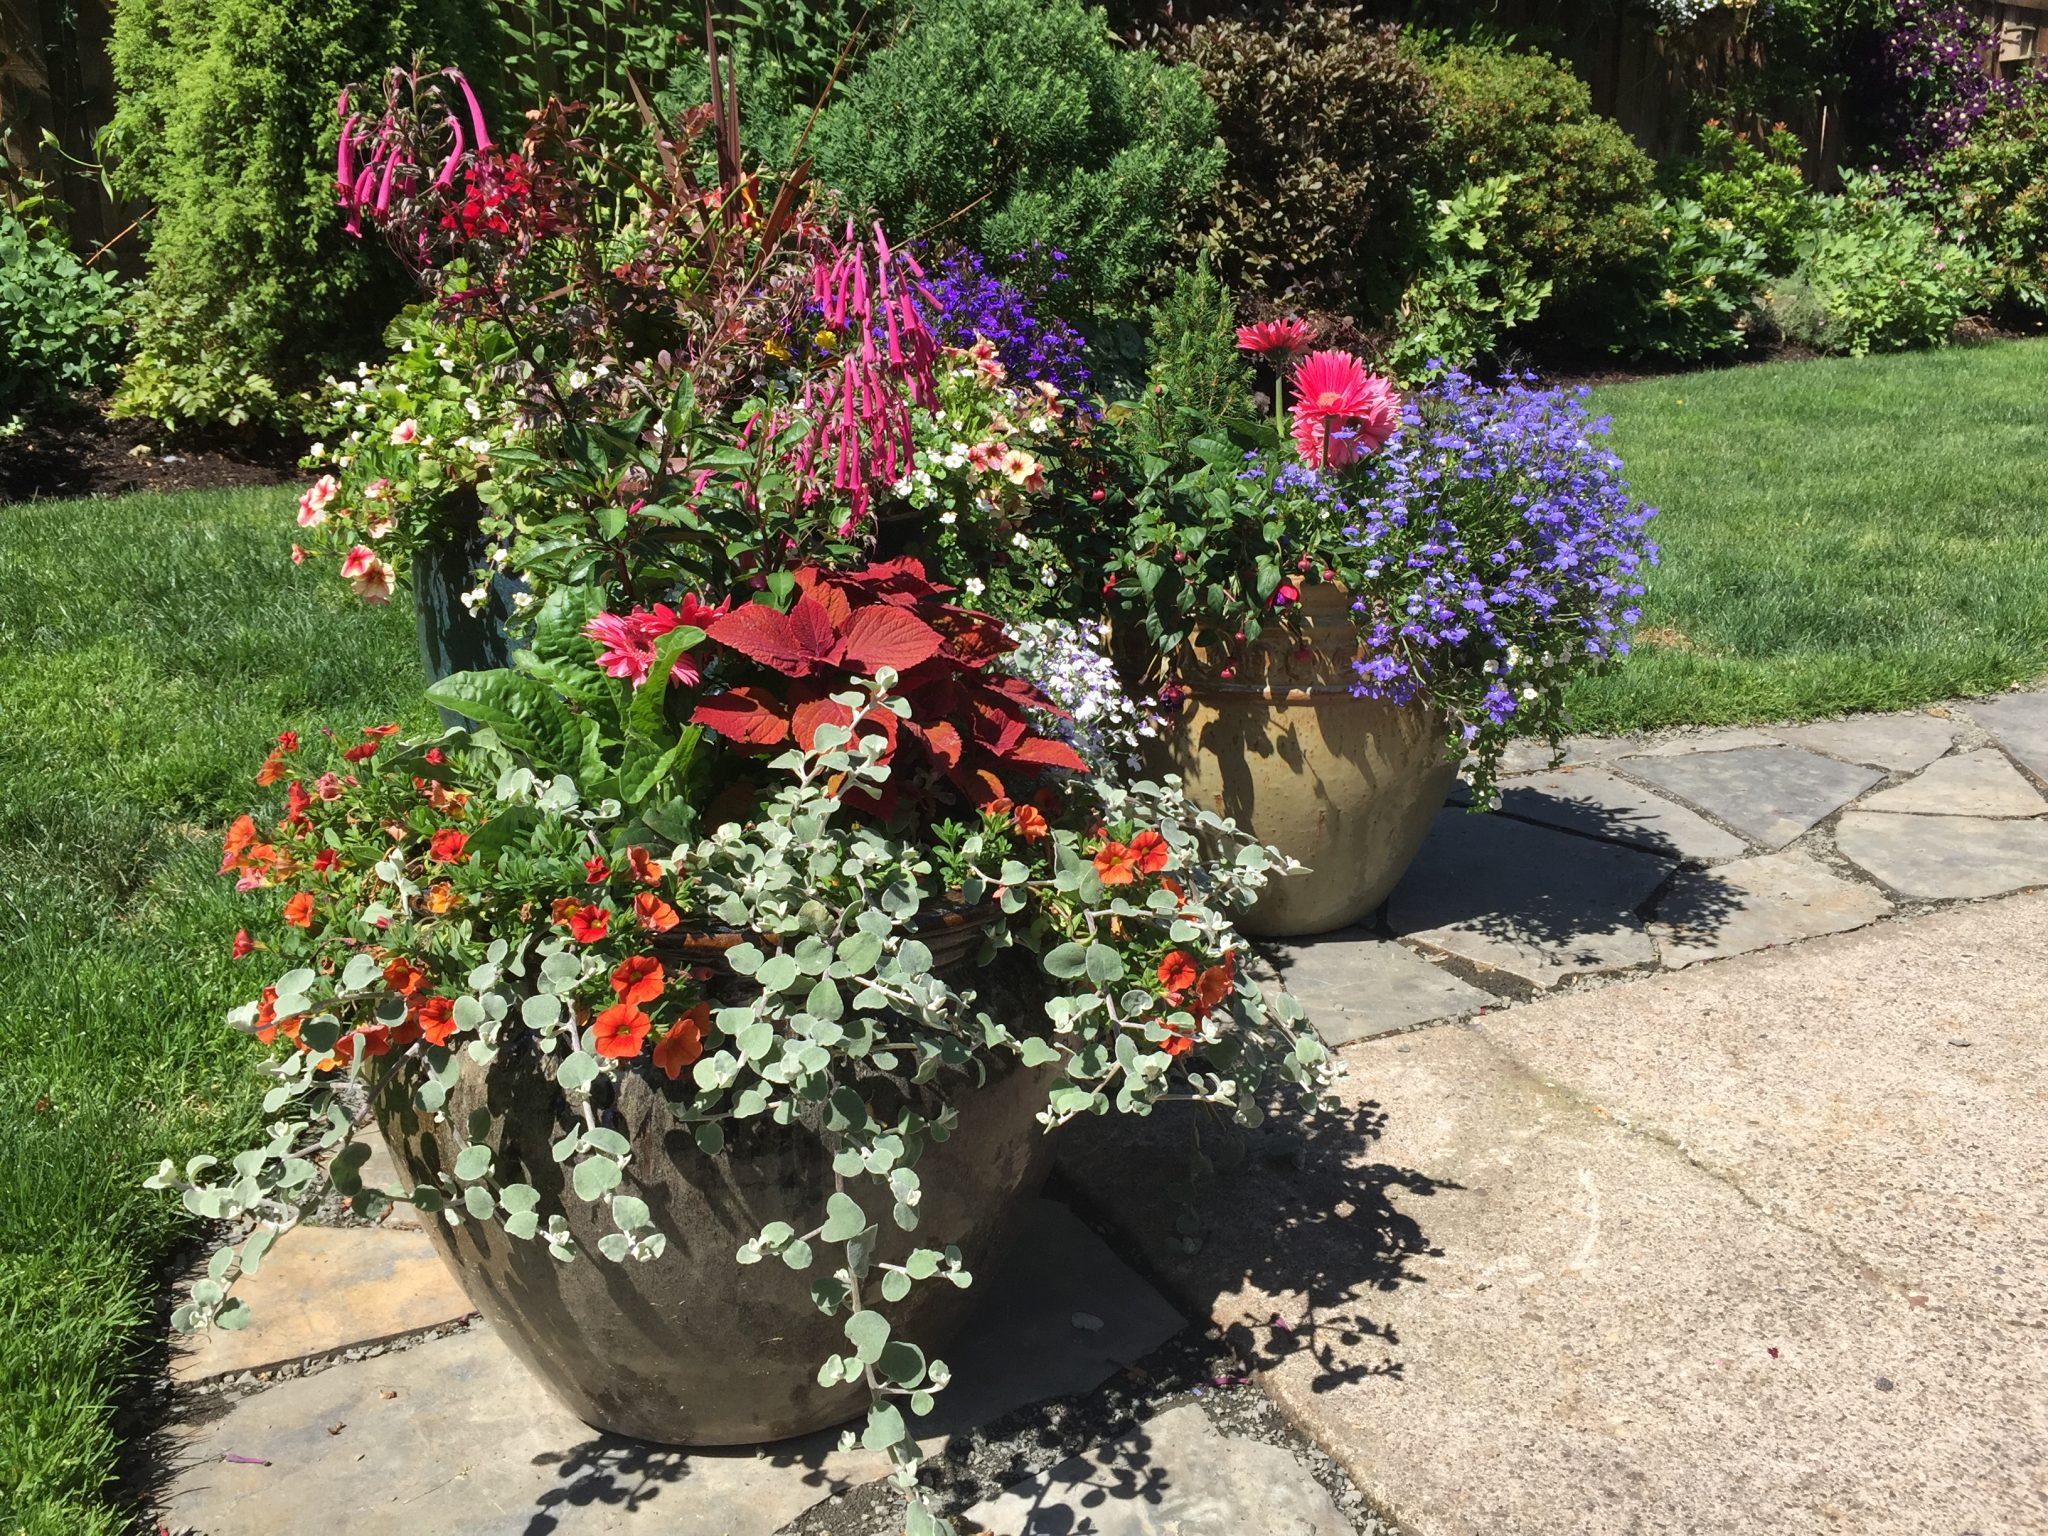 containers can be e quite heavy when filled with soil The roots of your plants will only utilize Container 3